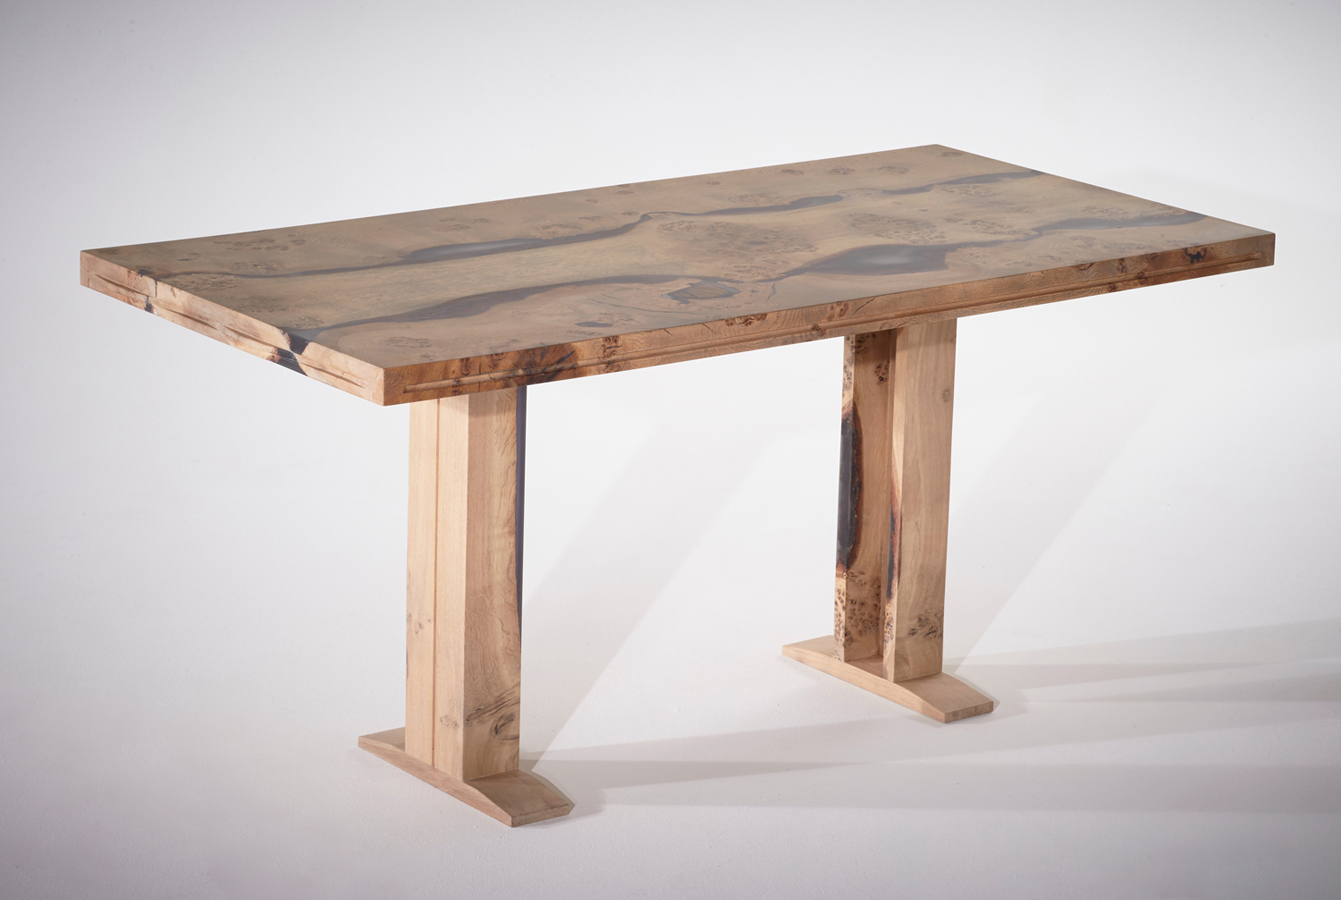 25Conference-table-in-English-oak_4.jpg